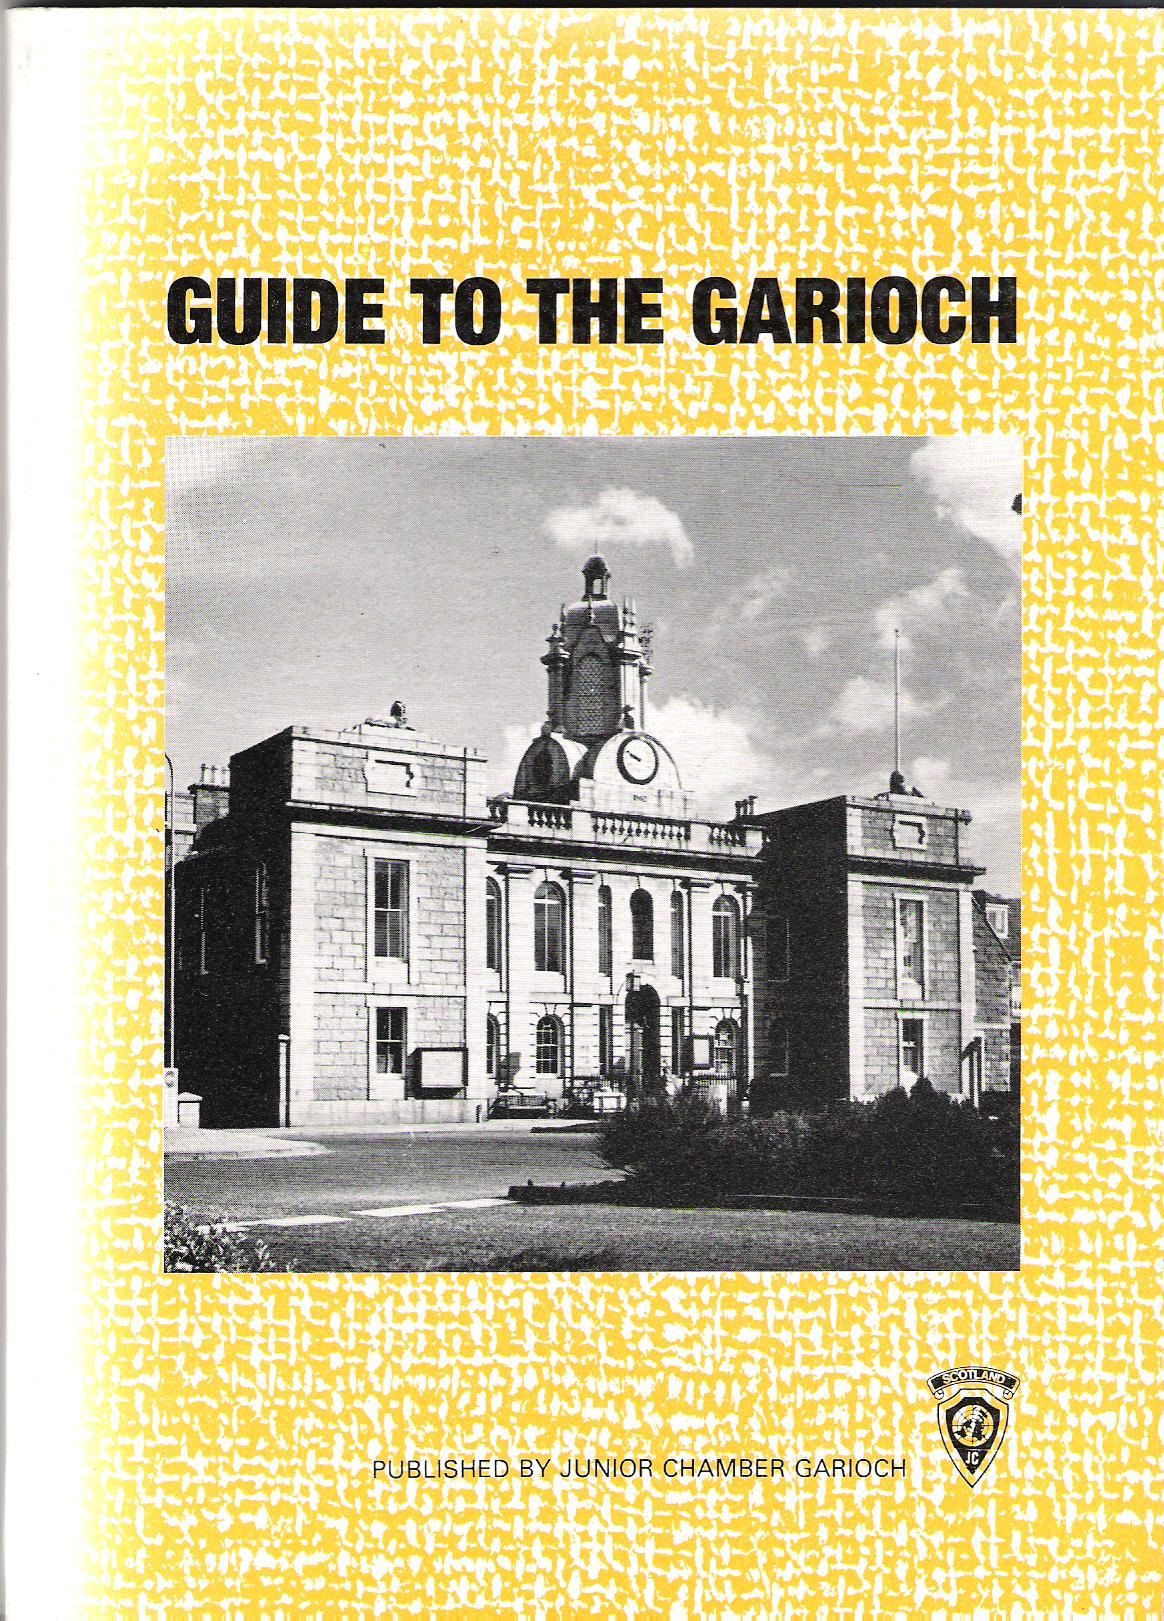 Guide to the Garioch.